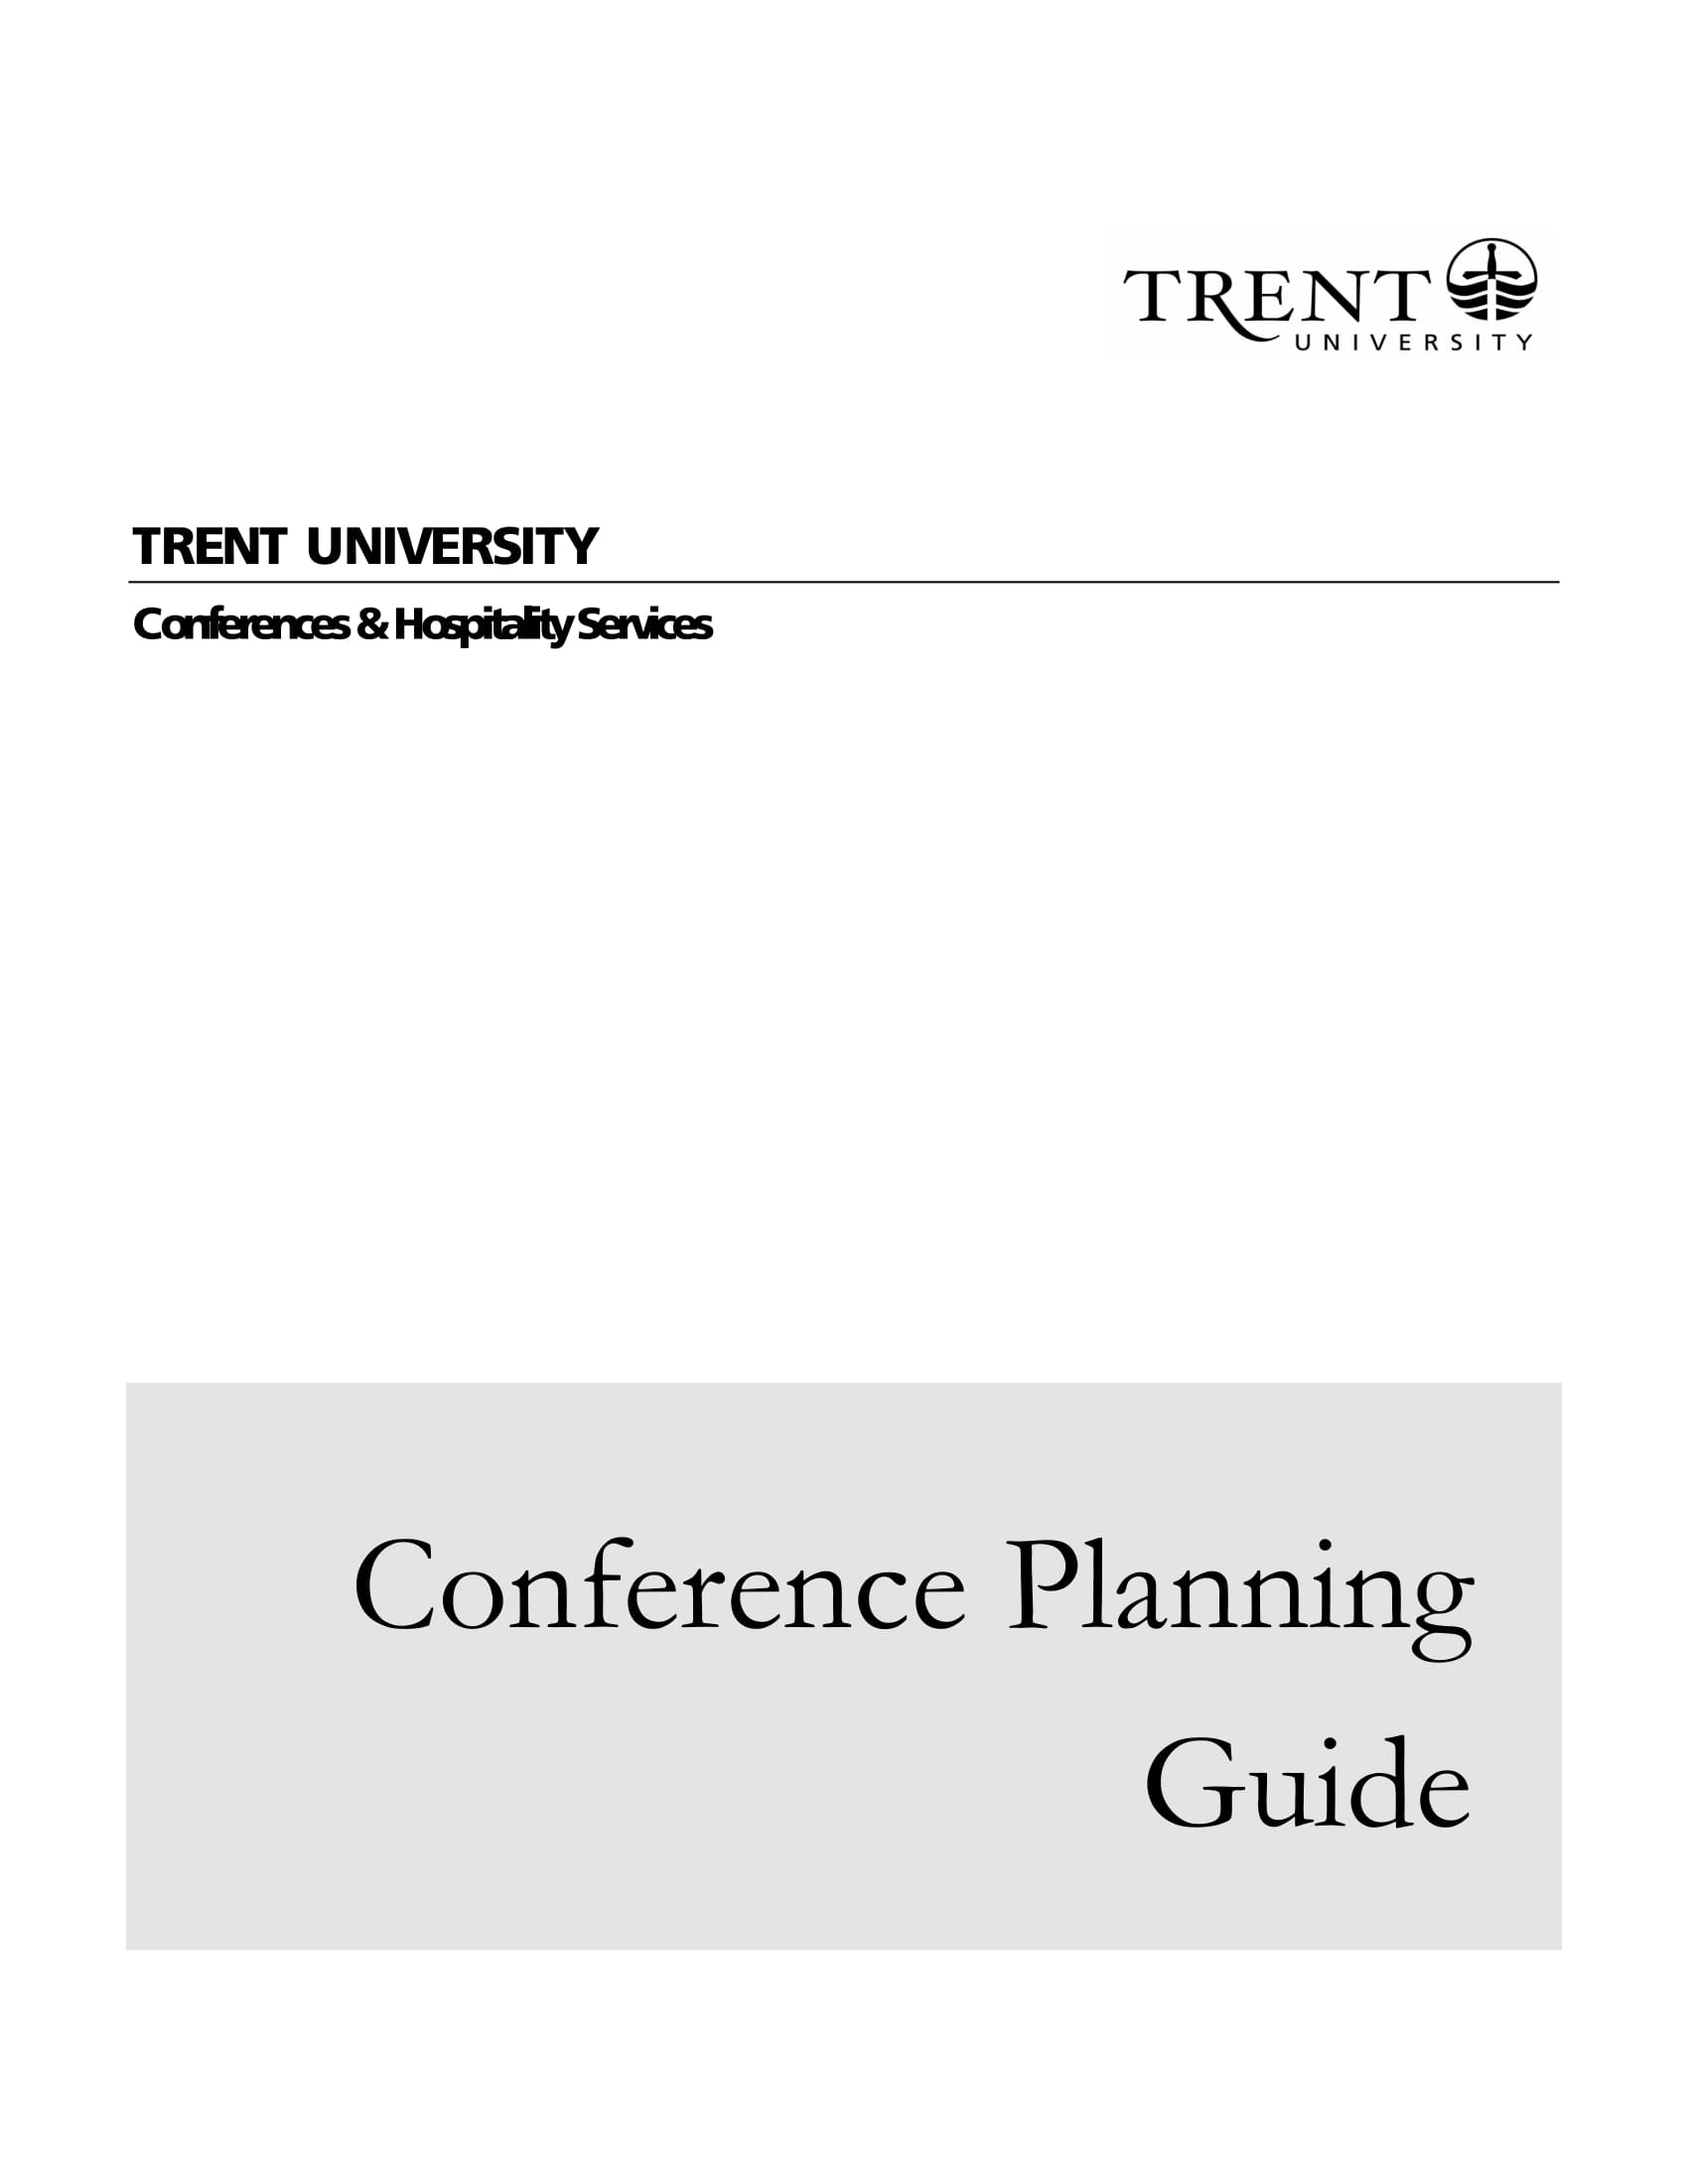 conference planning guide example